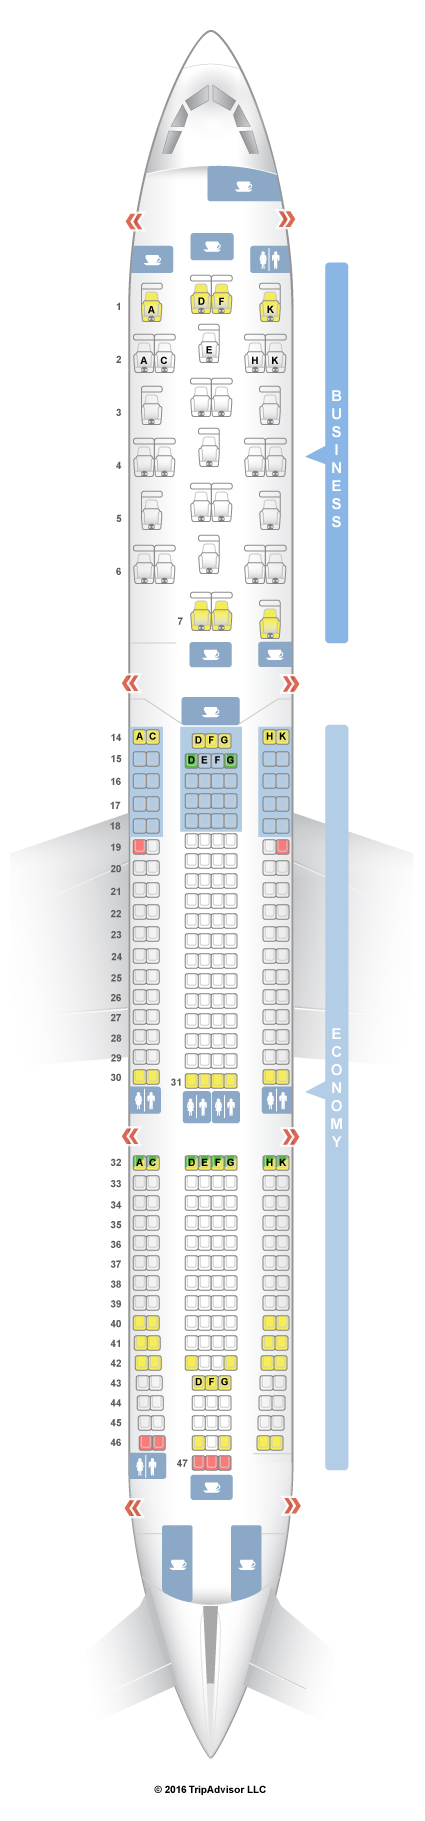 seatguru seat map brussels airlines airbus a330 300 333